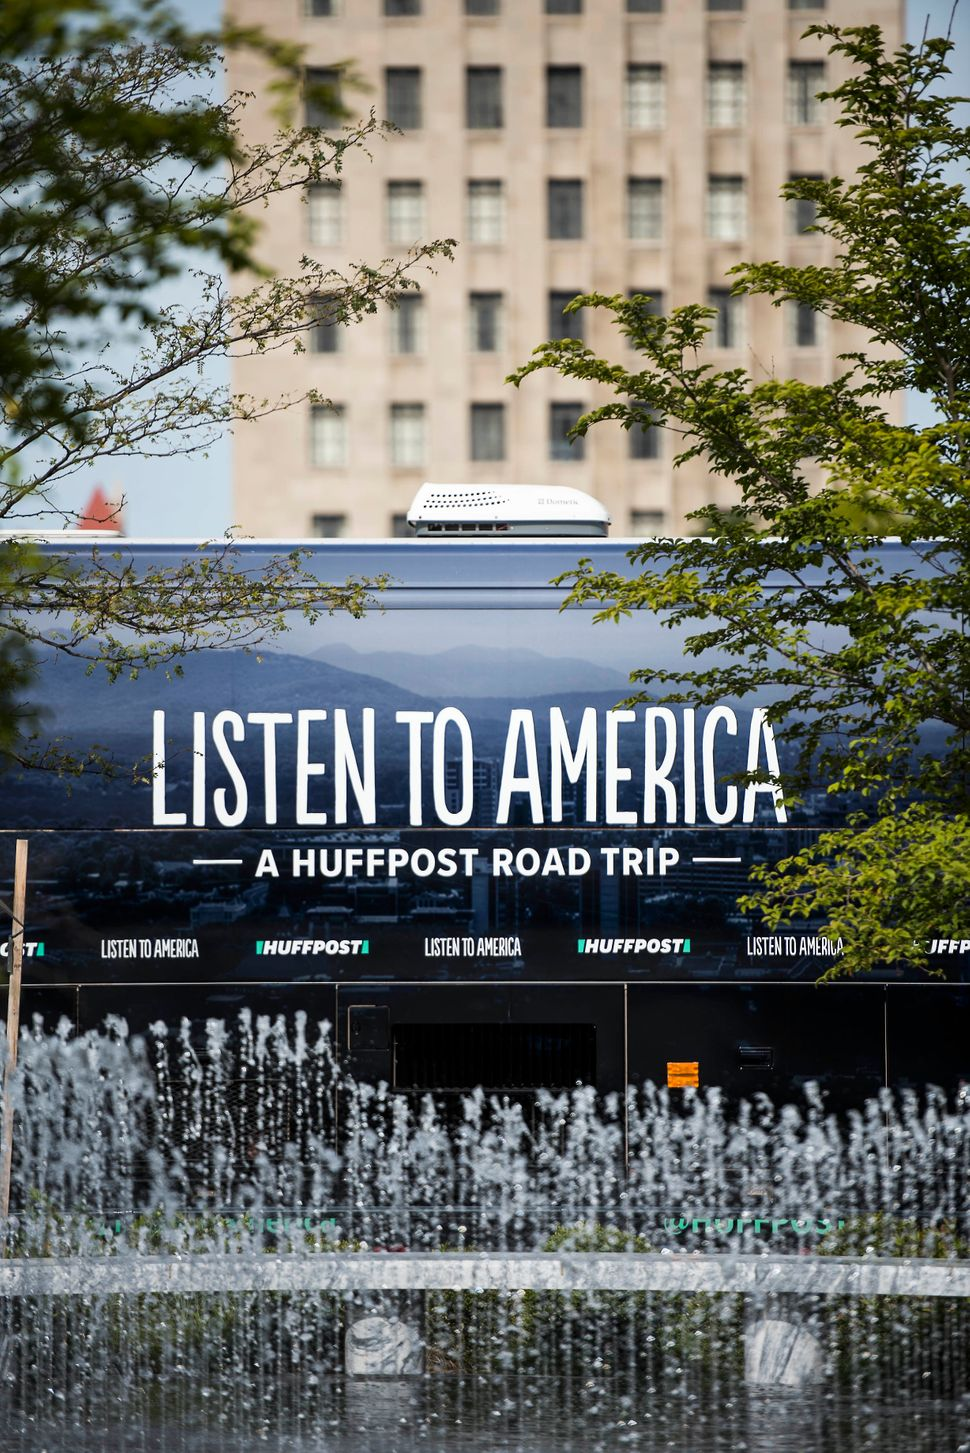 The HuffPost tour bus stops at Kiener Plaza Park near the Gateway Arch.